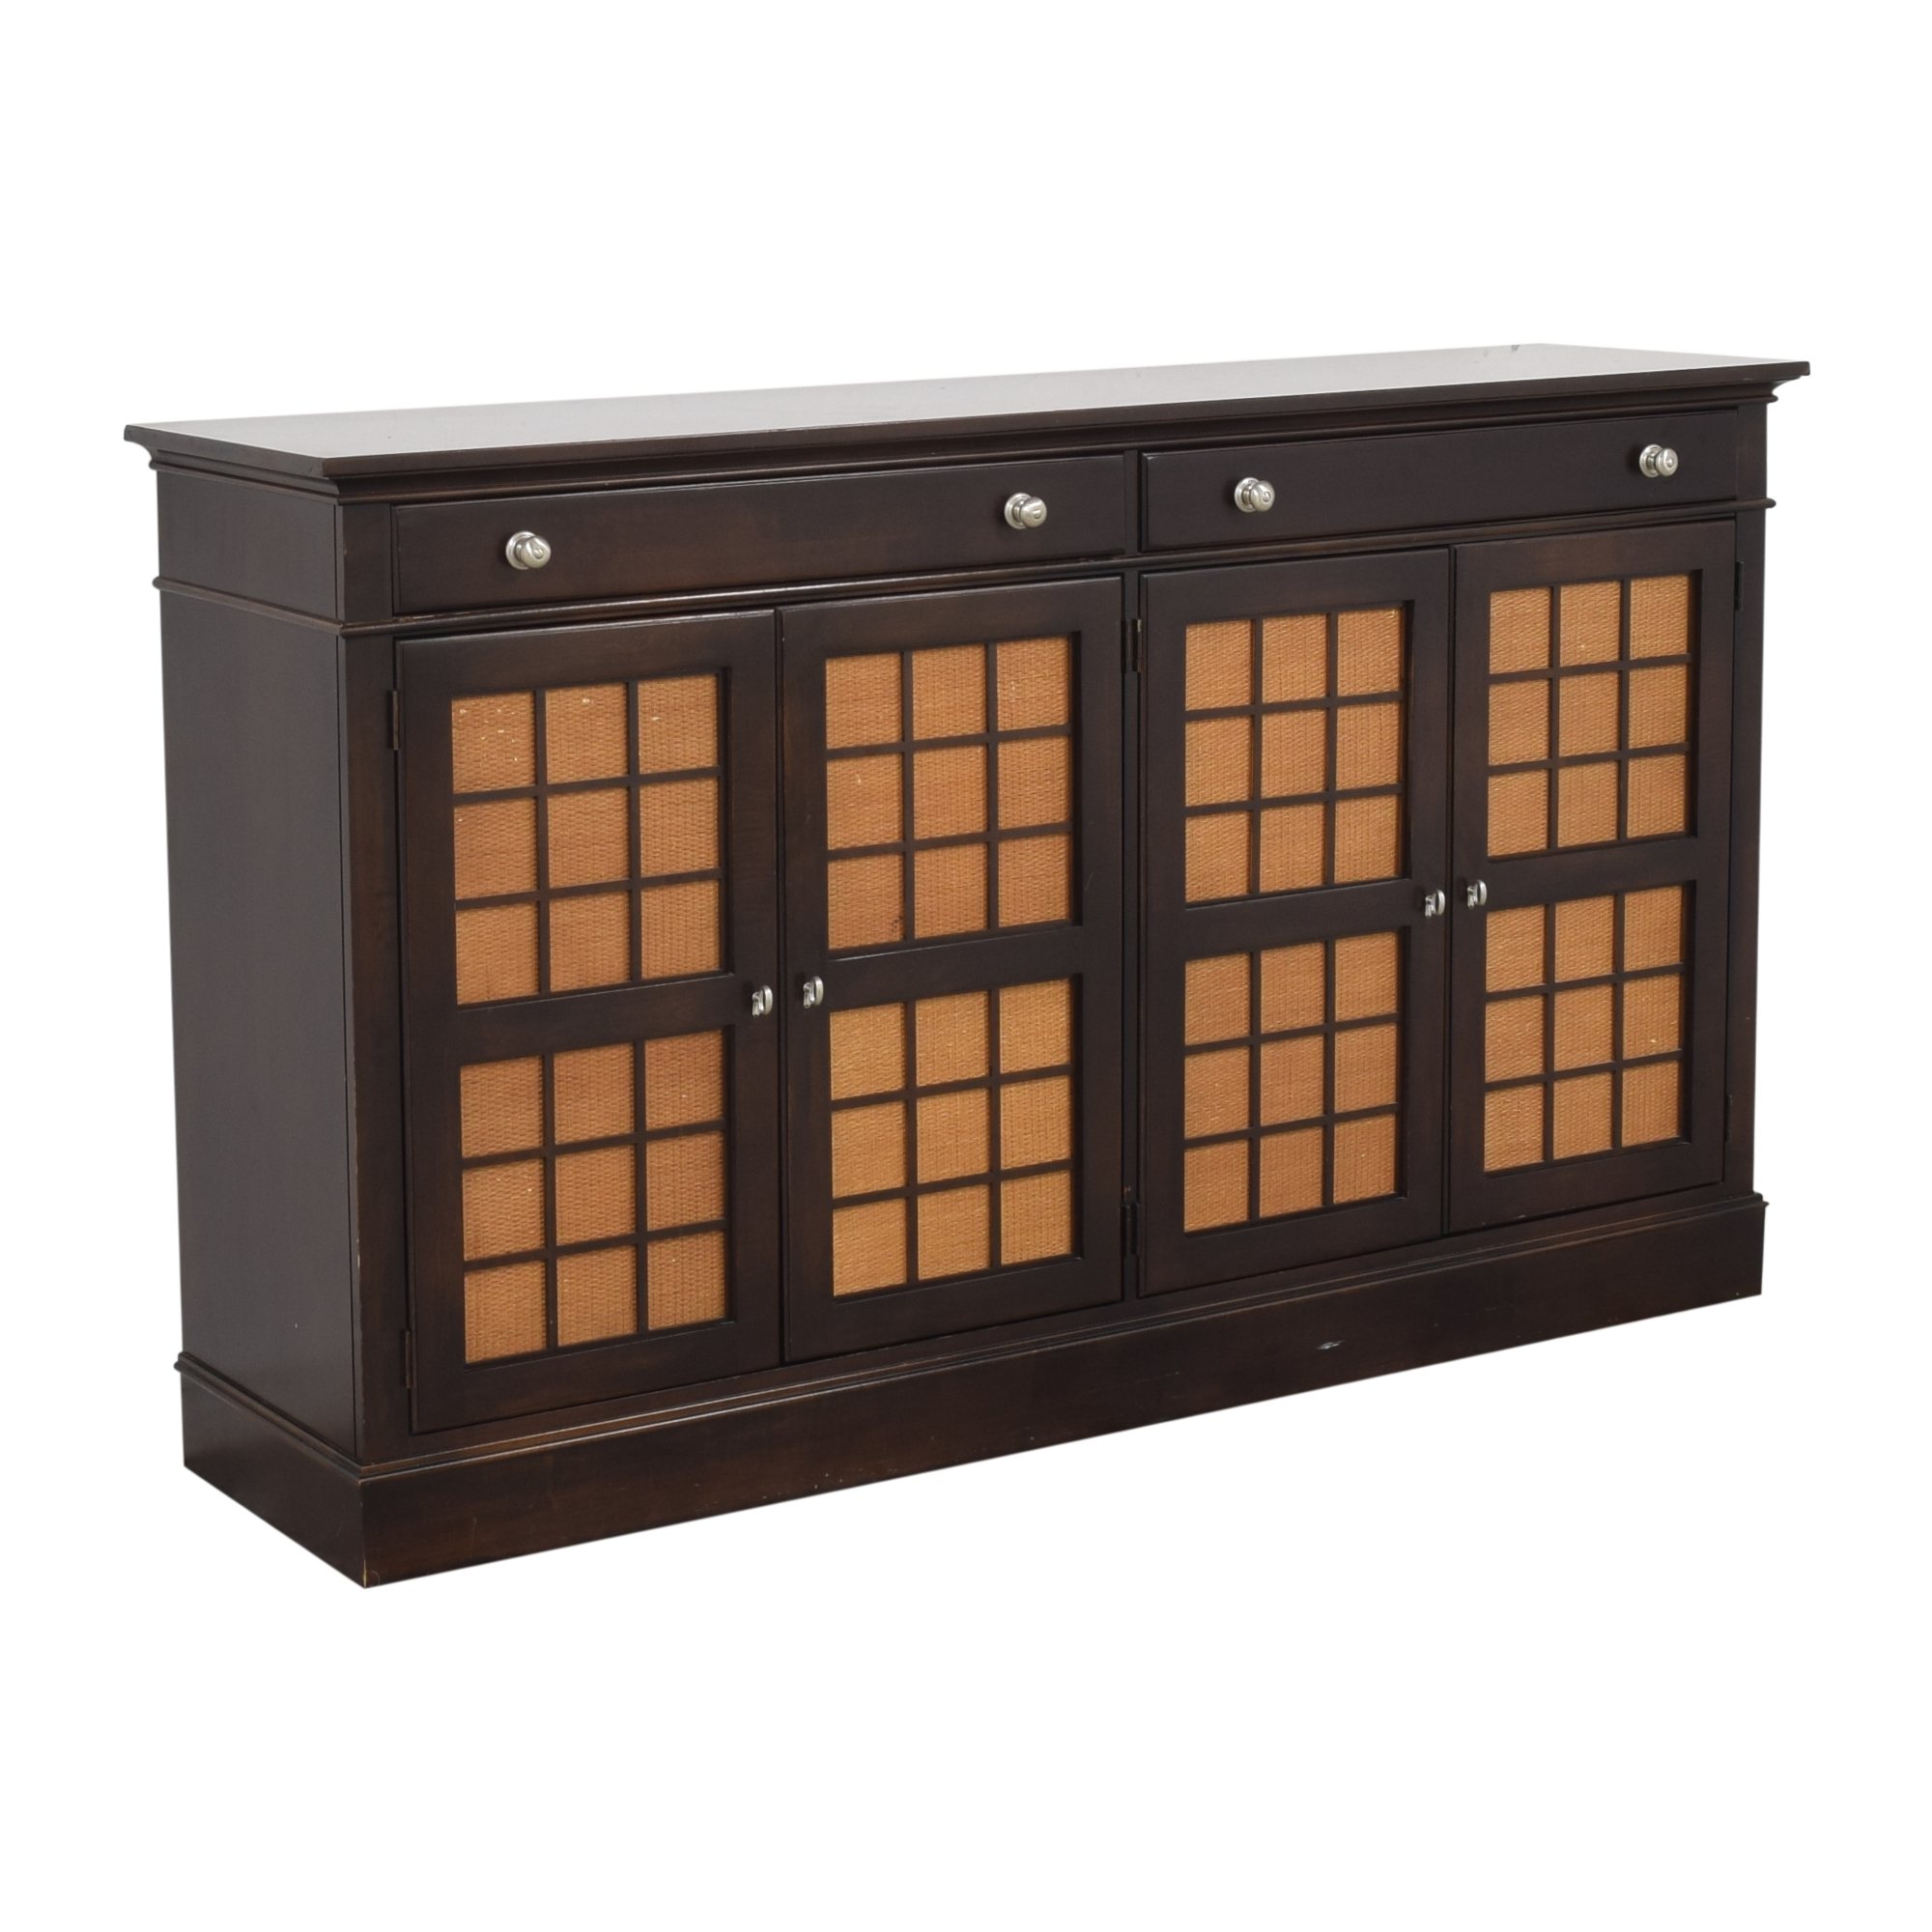 Lexington Furniture Lexington Furniture Nautica Home Collection Buffet Cabinets & Sideboards